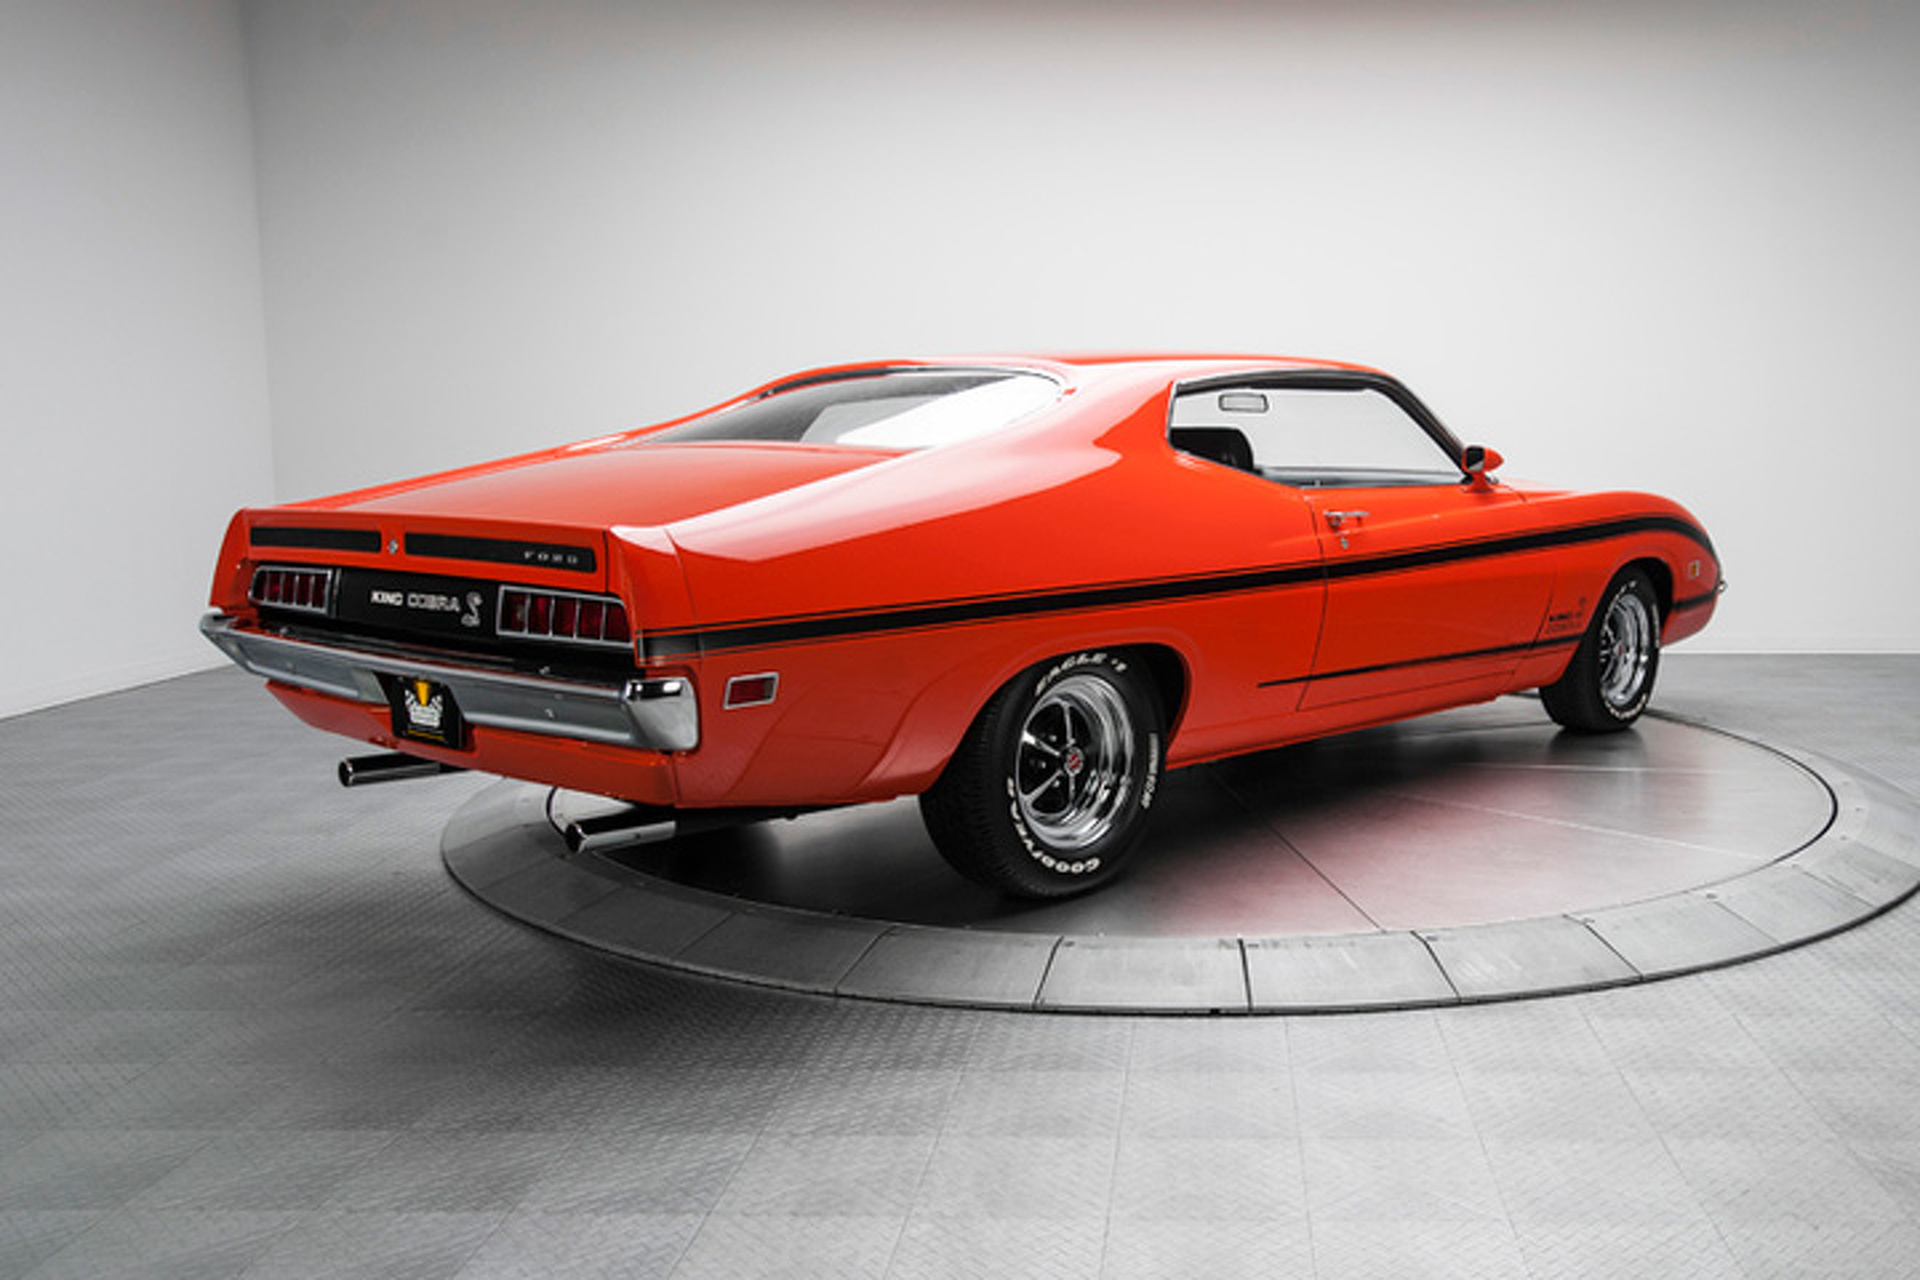 Rare Ford Torino Prototype To Display At Hilton Head Concours 1968 Coronet Engine Wiring Diagram